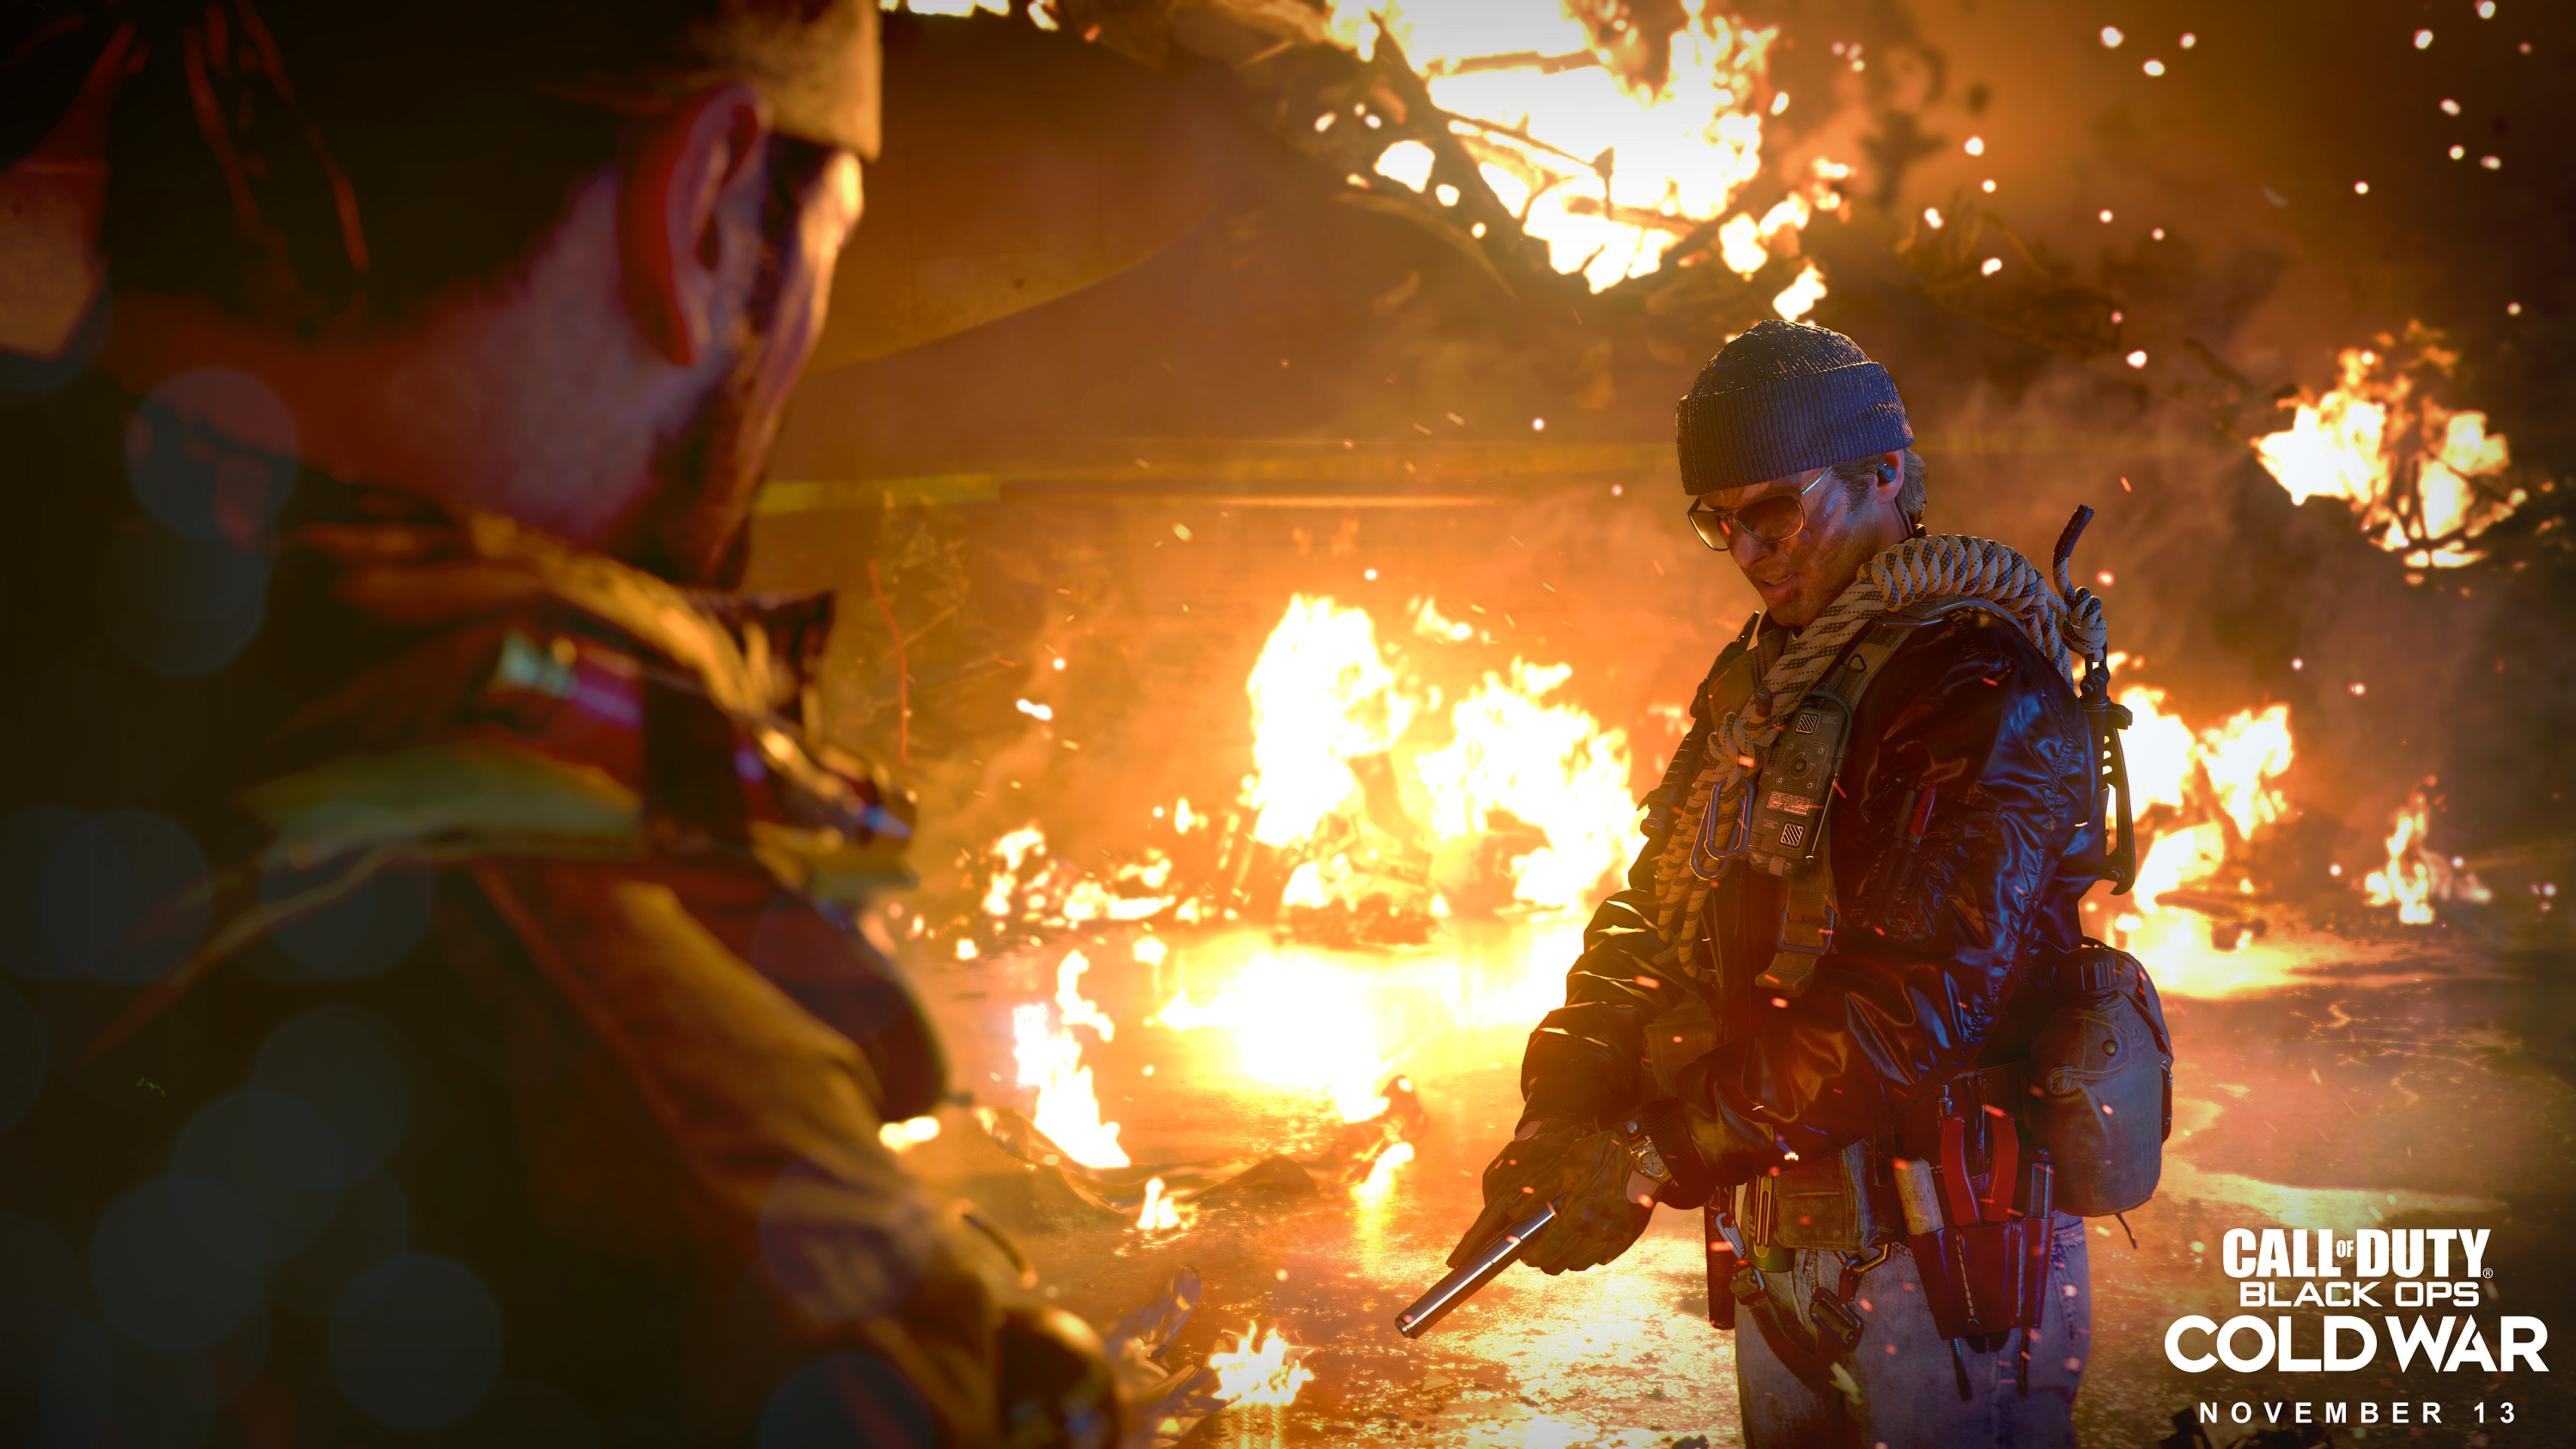 Call Of Duty Black Ops Cold War Ps4 Open Beta Date Potentially Leaked